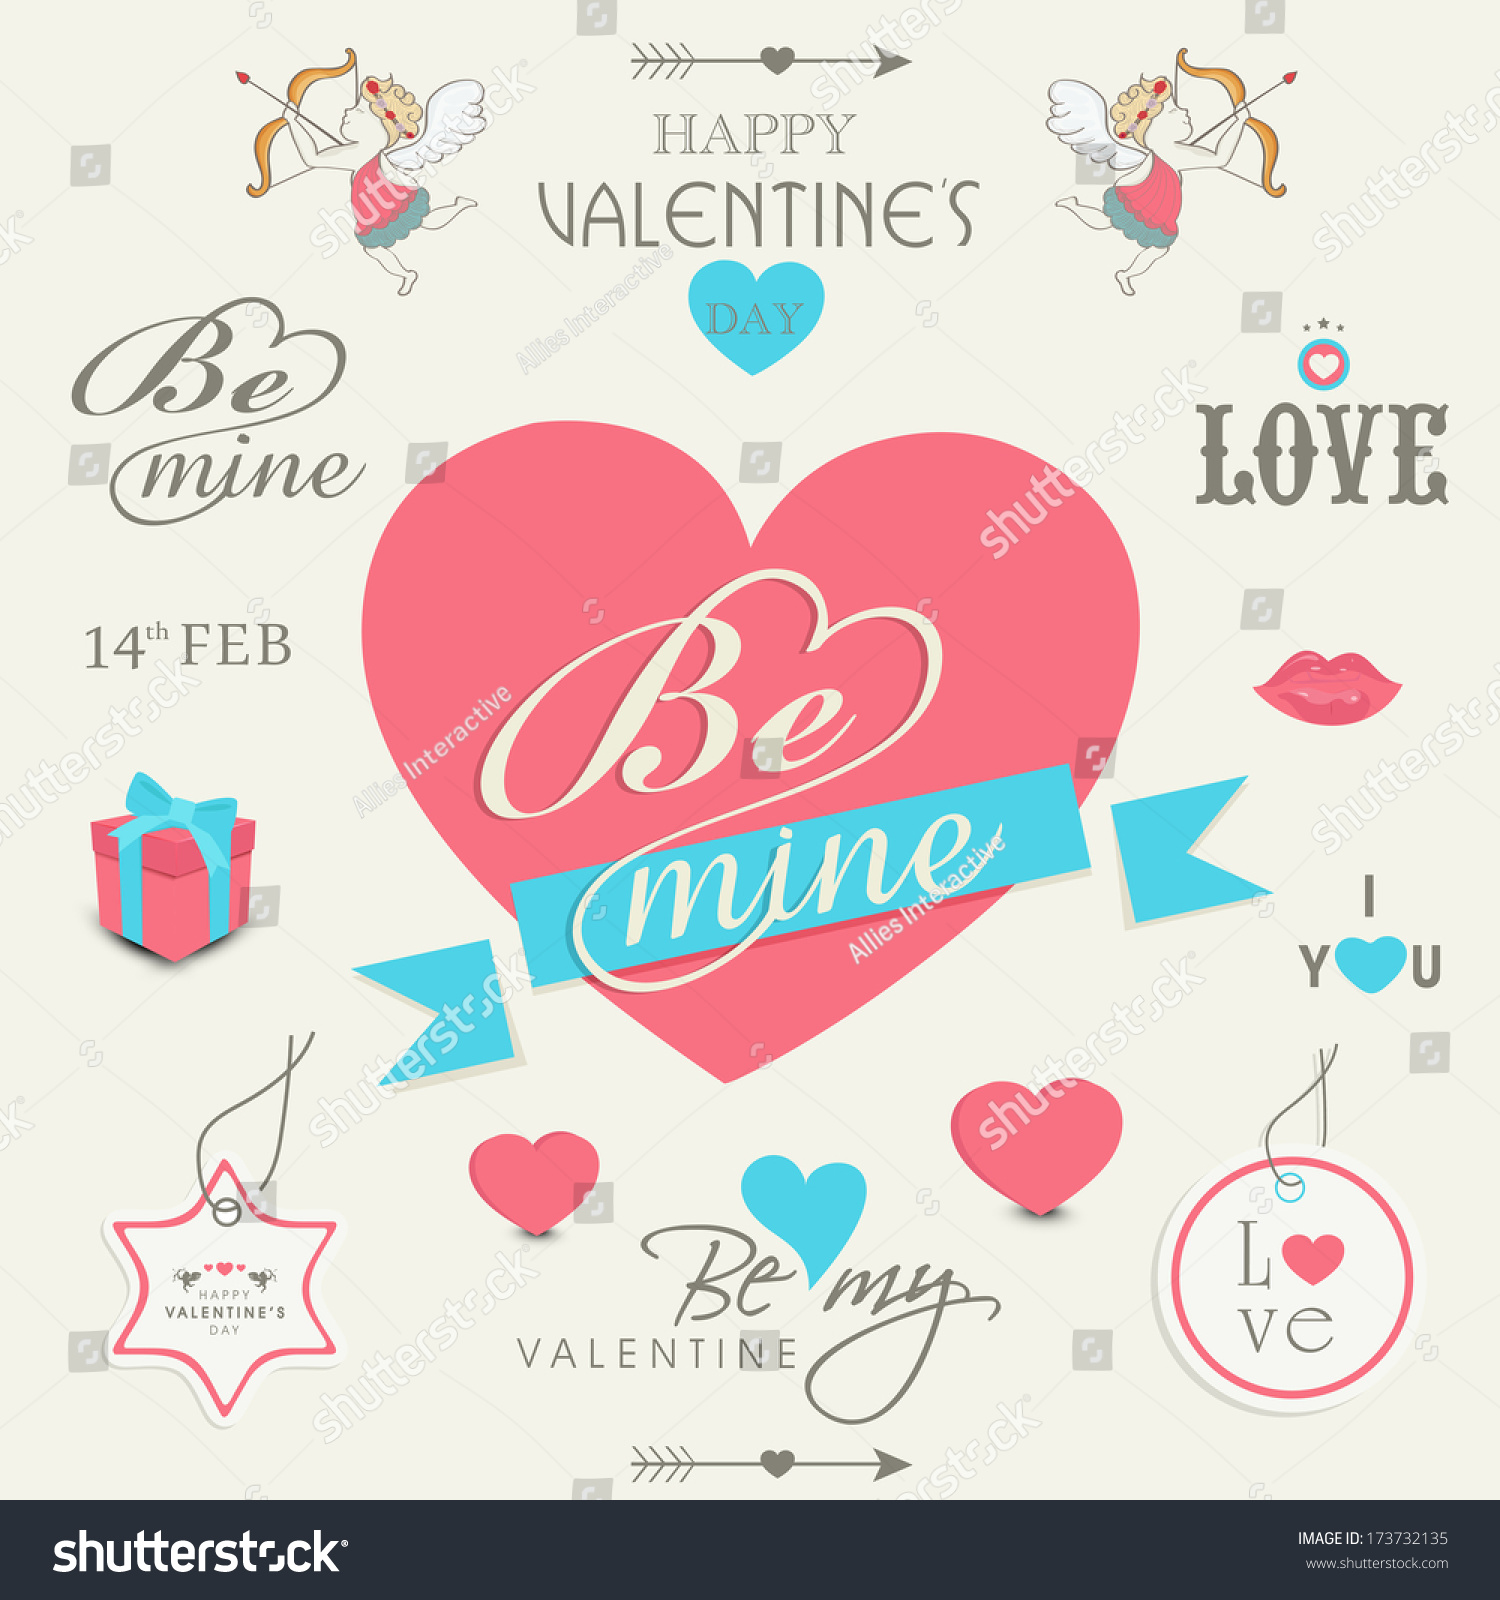 various heart shape designs stylish text stock photo photo vector